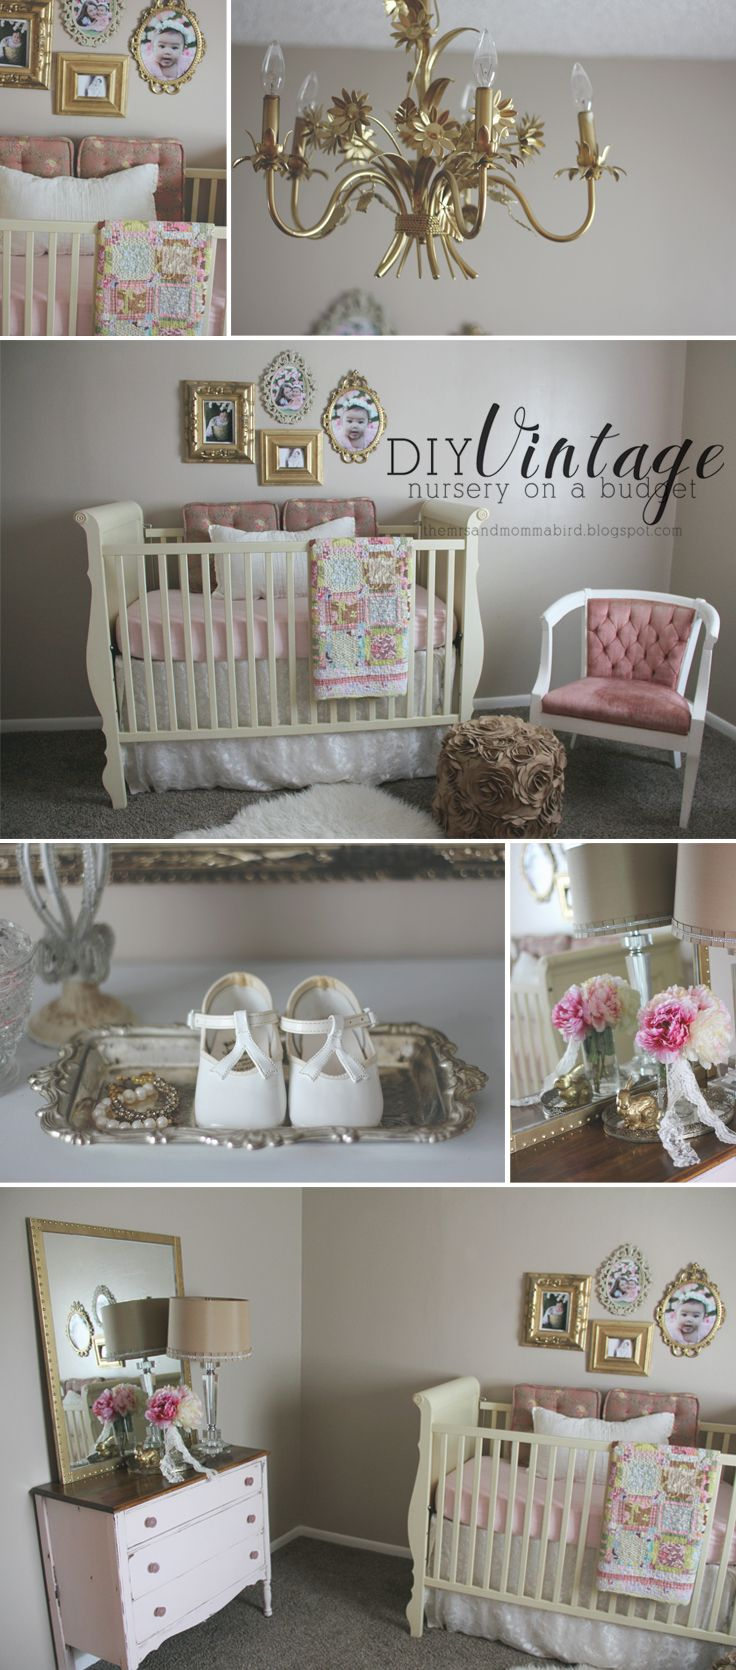 DIY Vintage Nursery {on a budget} pink and gold nursery | gold nursery | nursery on a budget | pink nursery | www.themrsandmommabird.blogspot.com